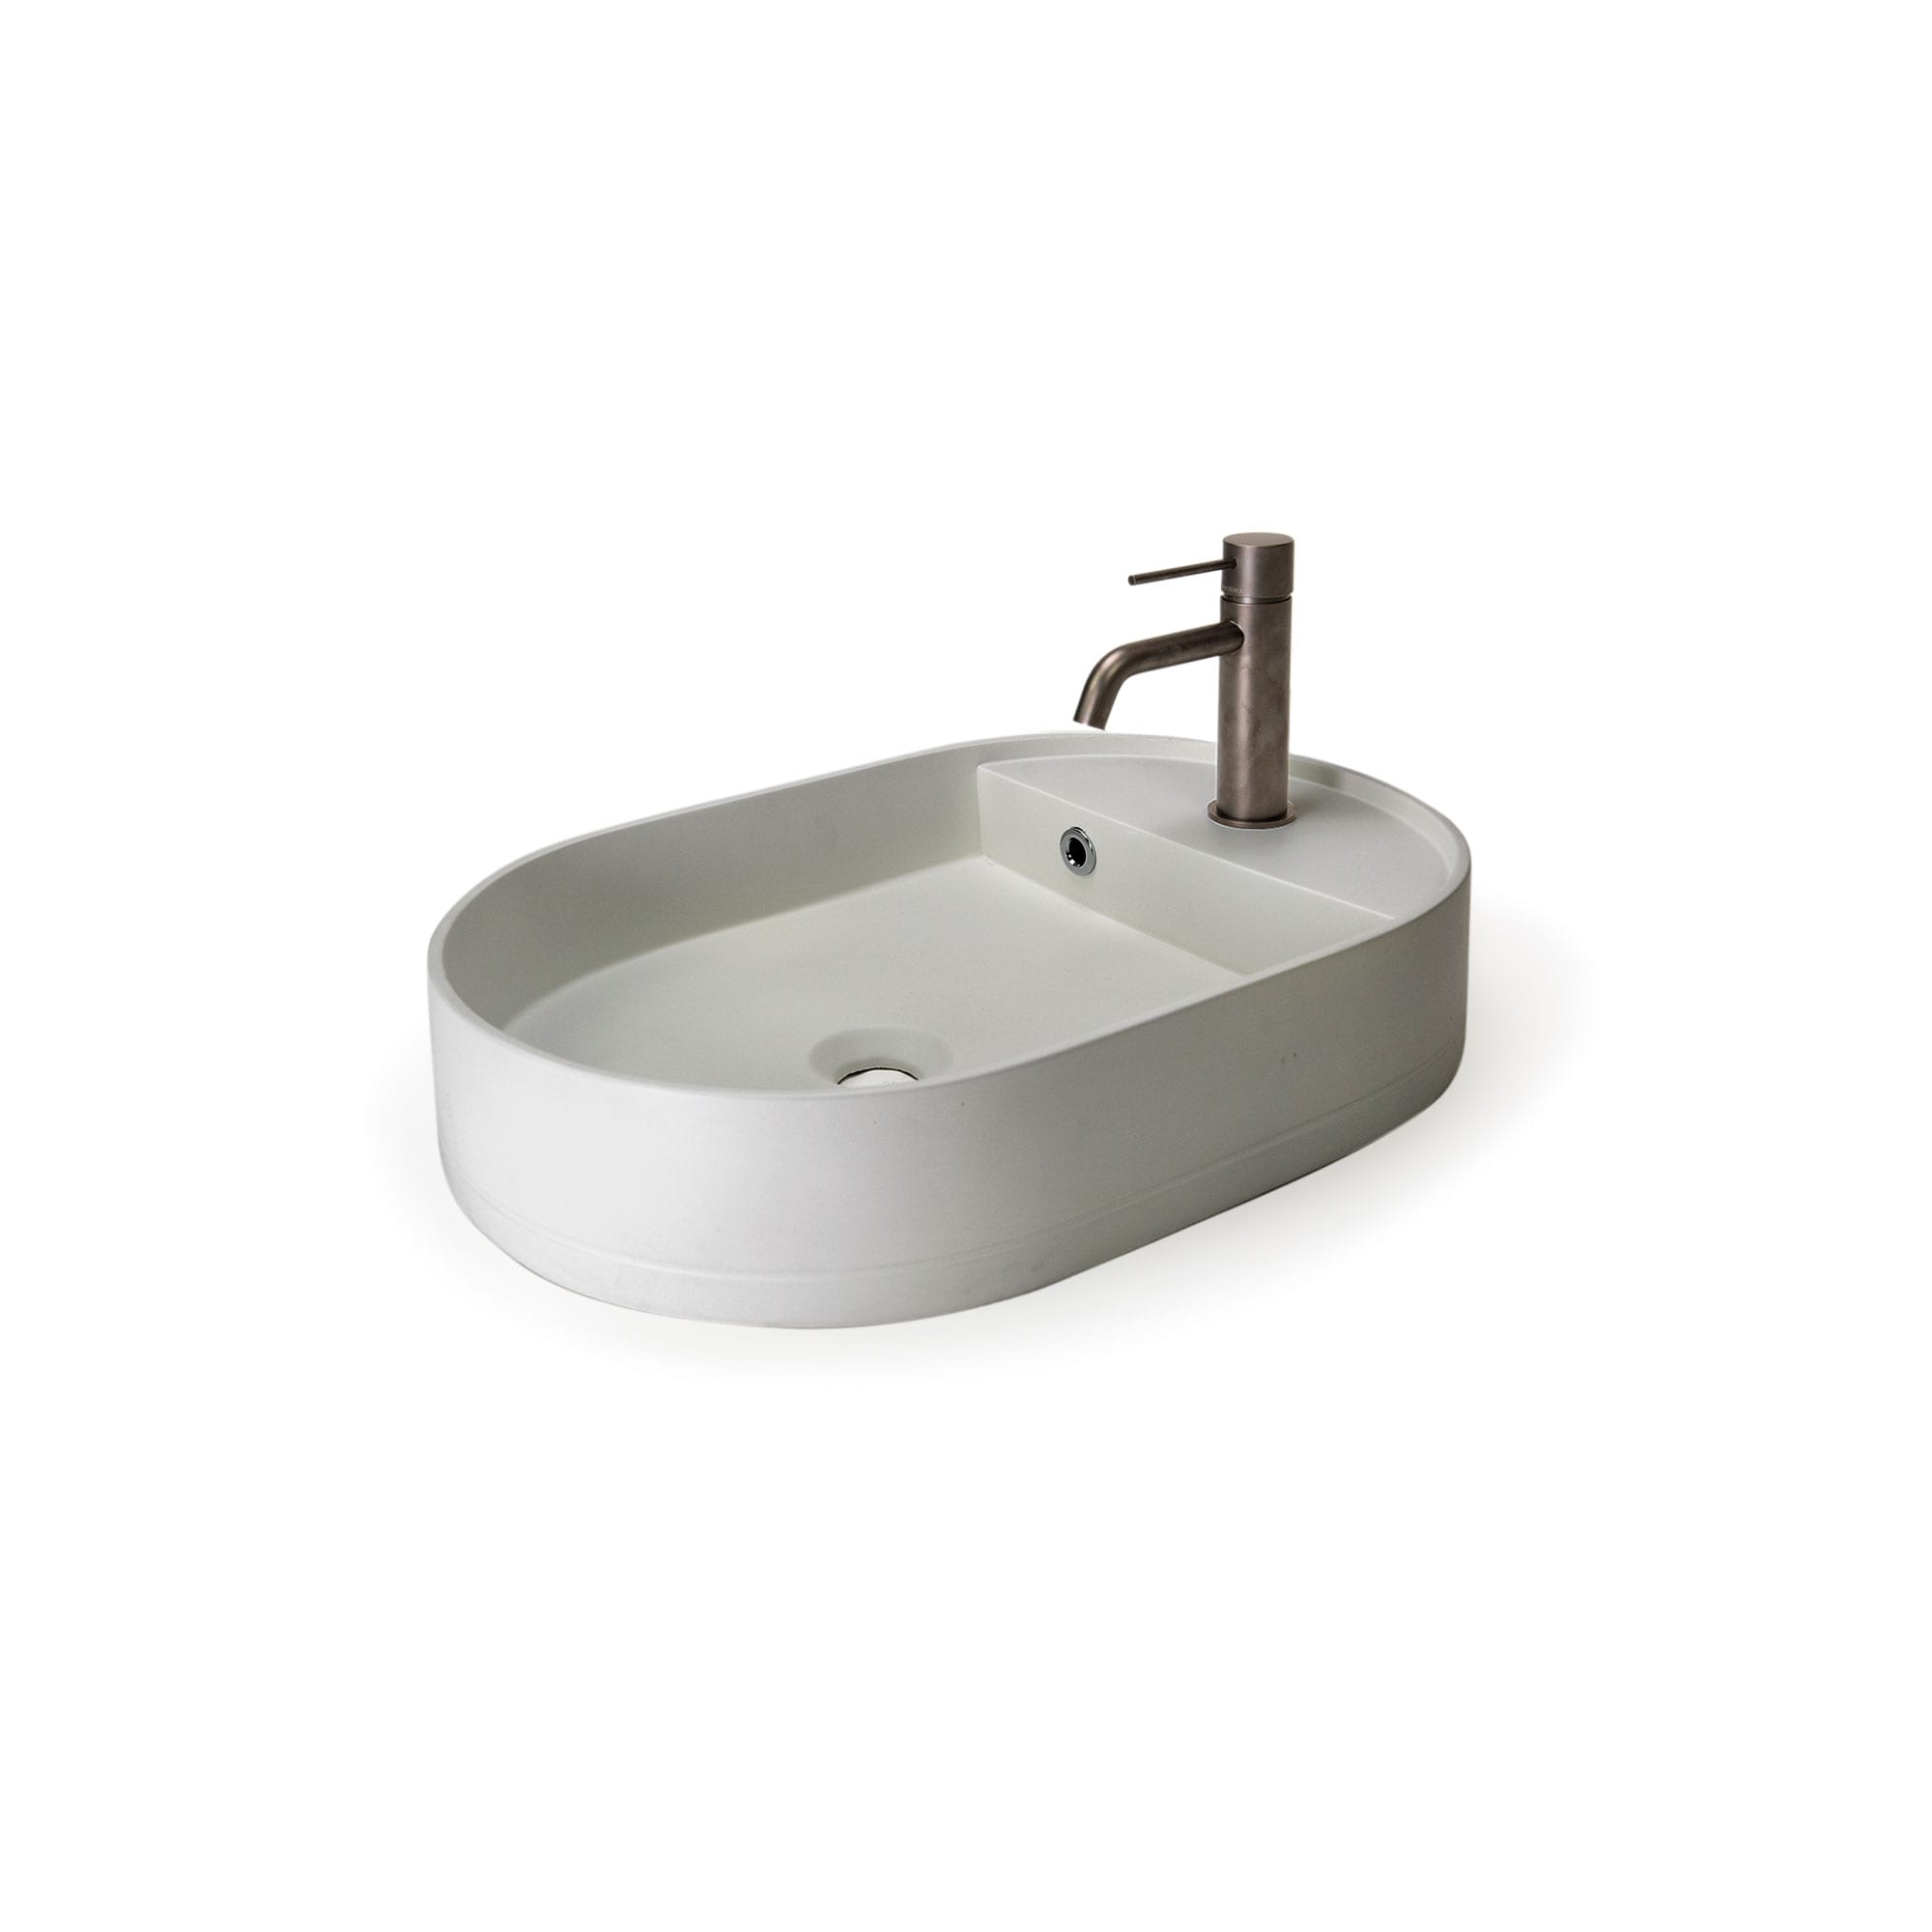 Shelf Oval Basin 13